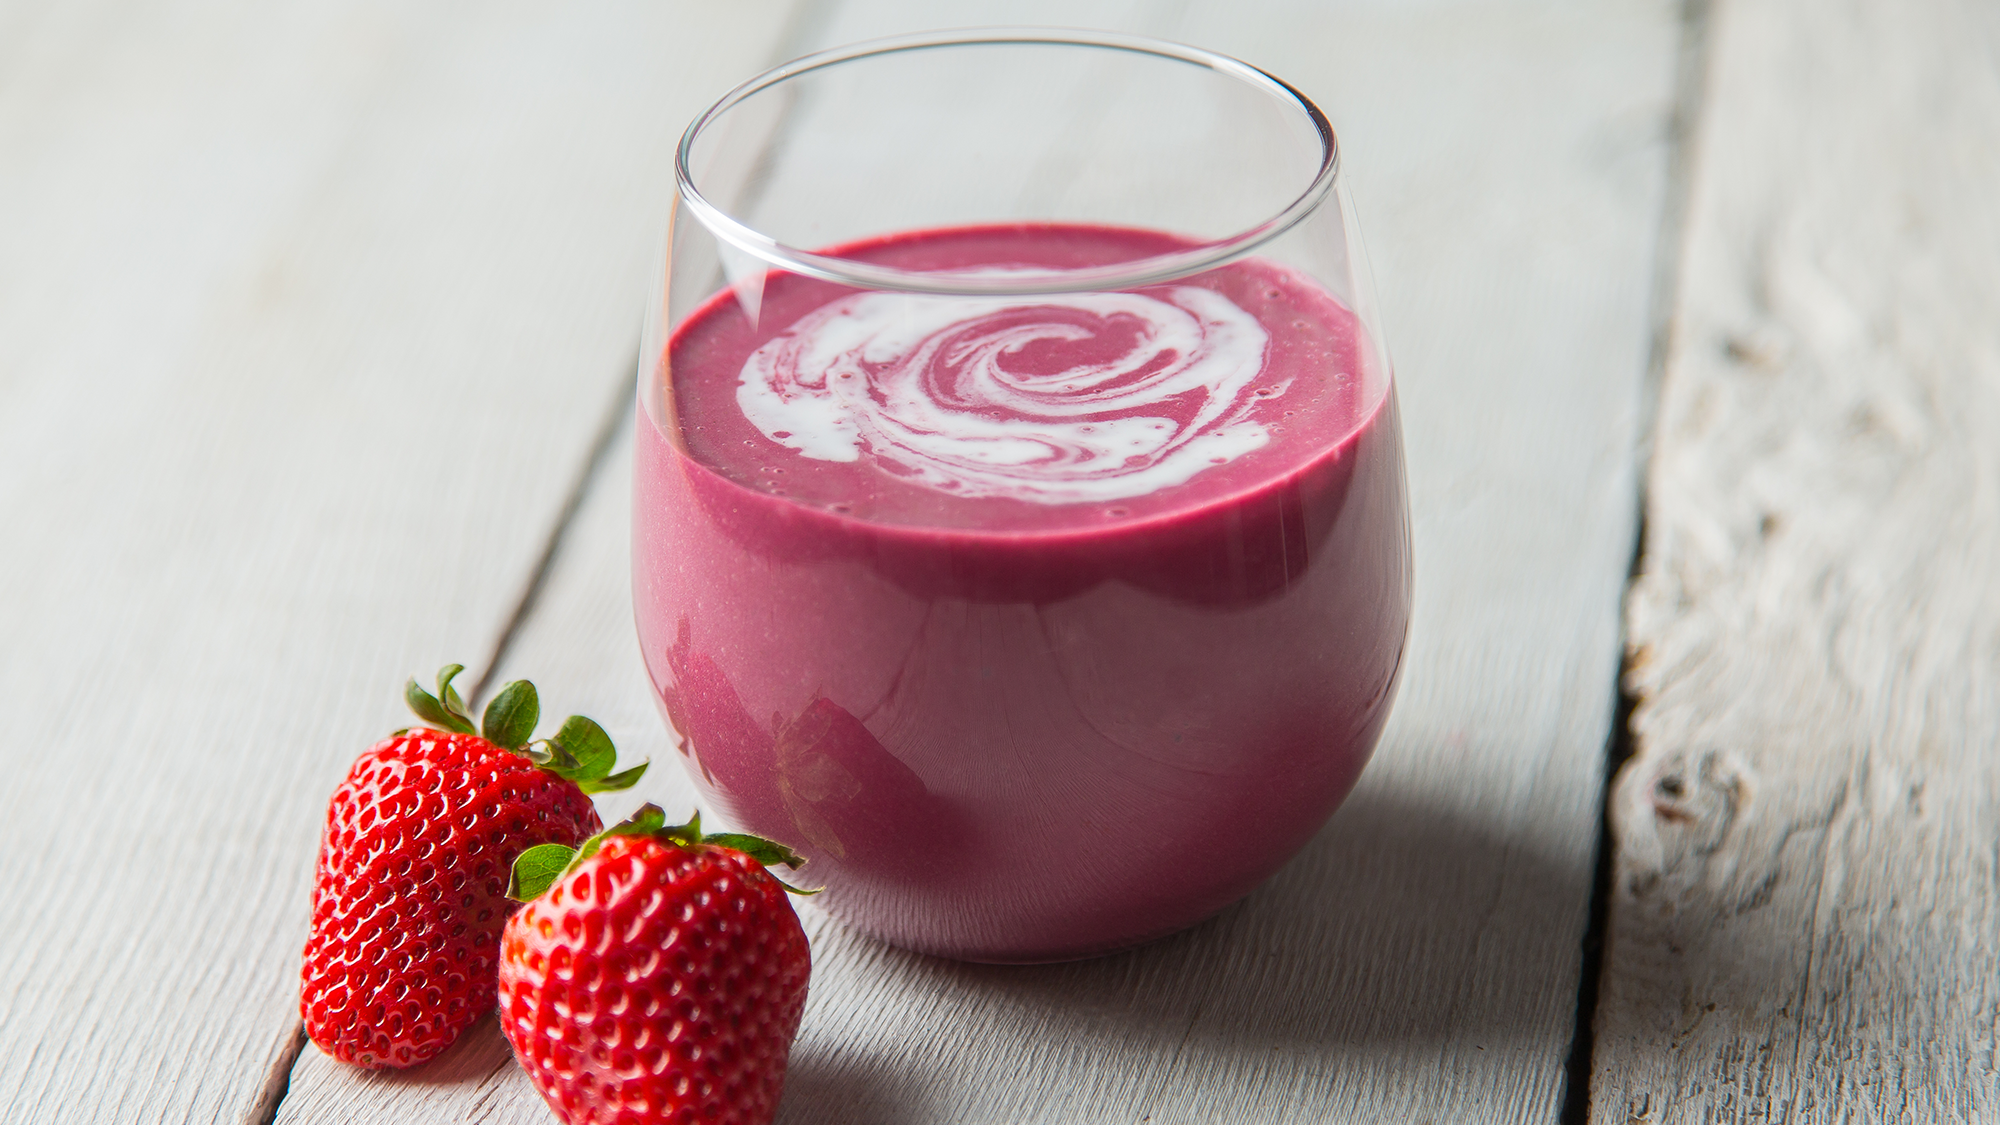 Strawberries and Cream Smoothie